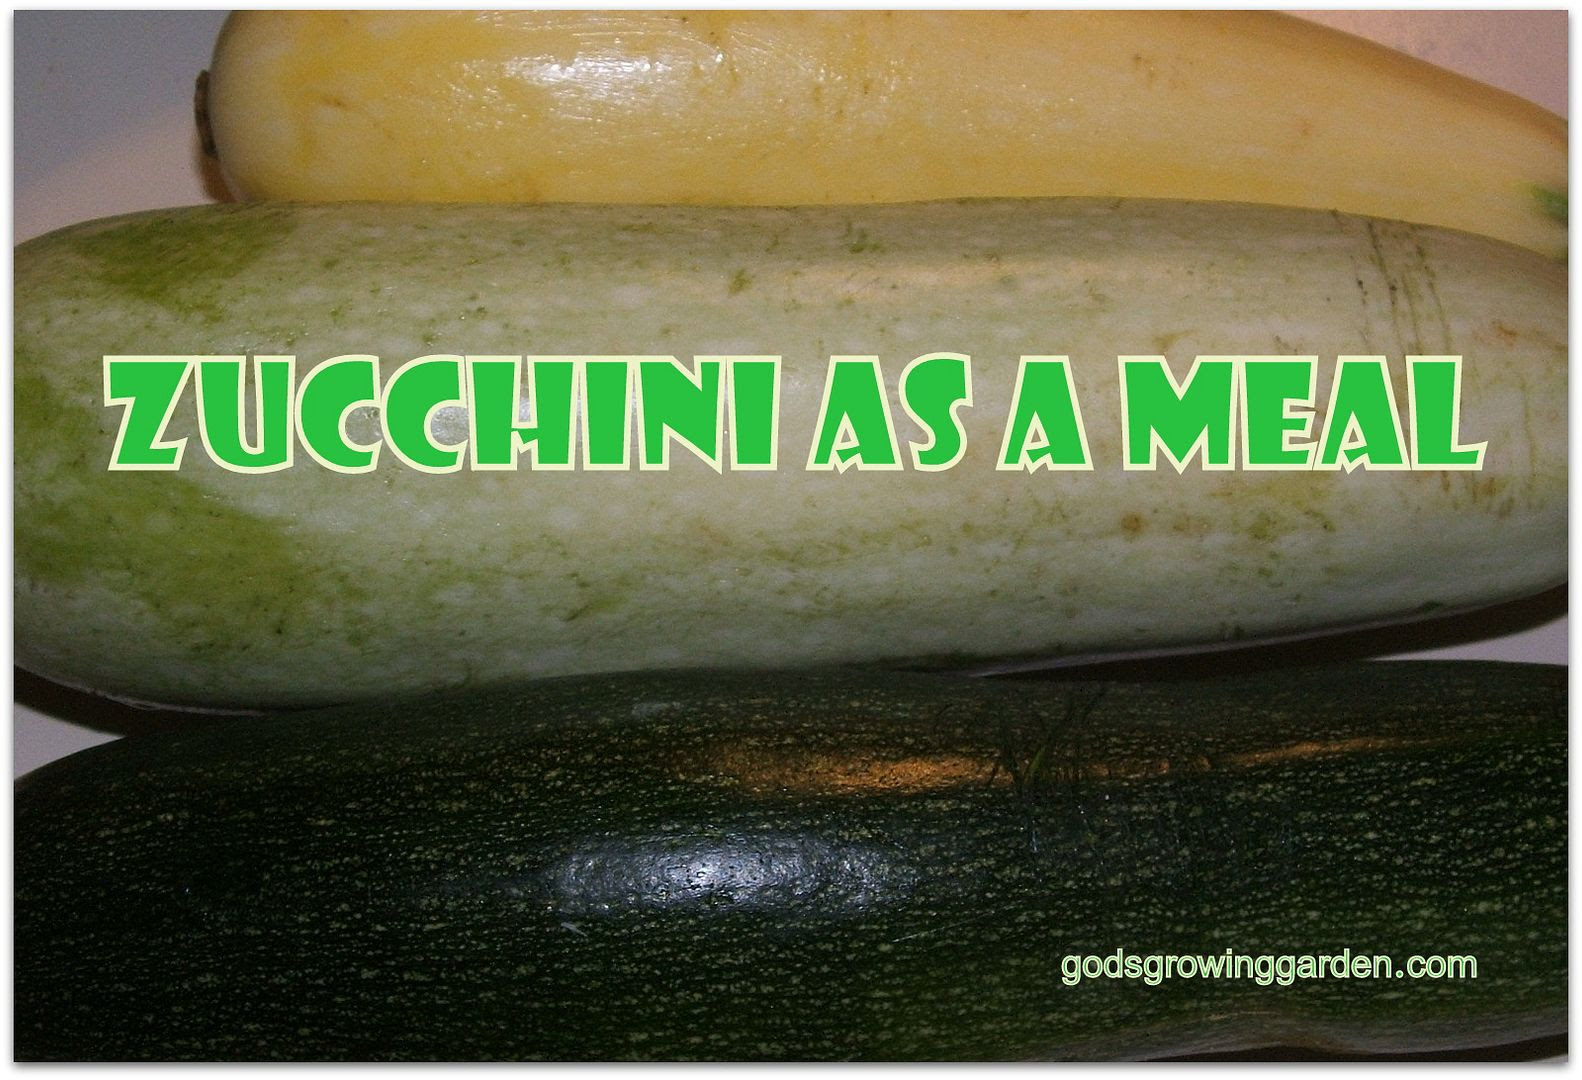 Zucchini by Angie Ouellete-Tower for godsgrowinggarden.com photo 002_zps3dbe5b4c.jpg